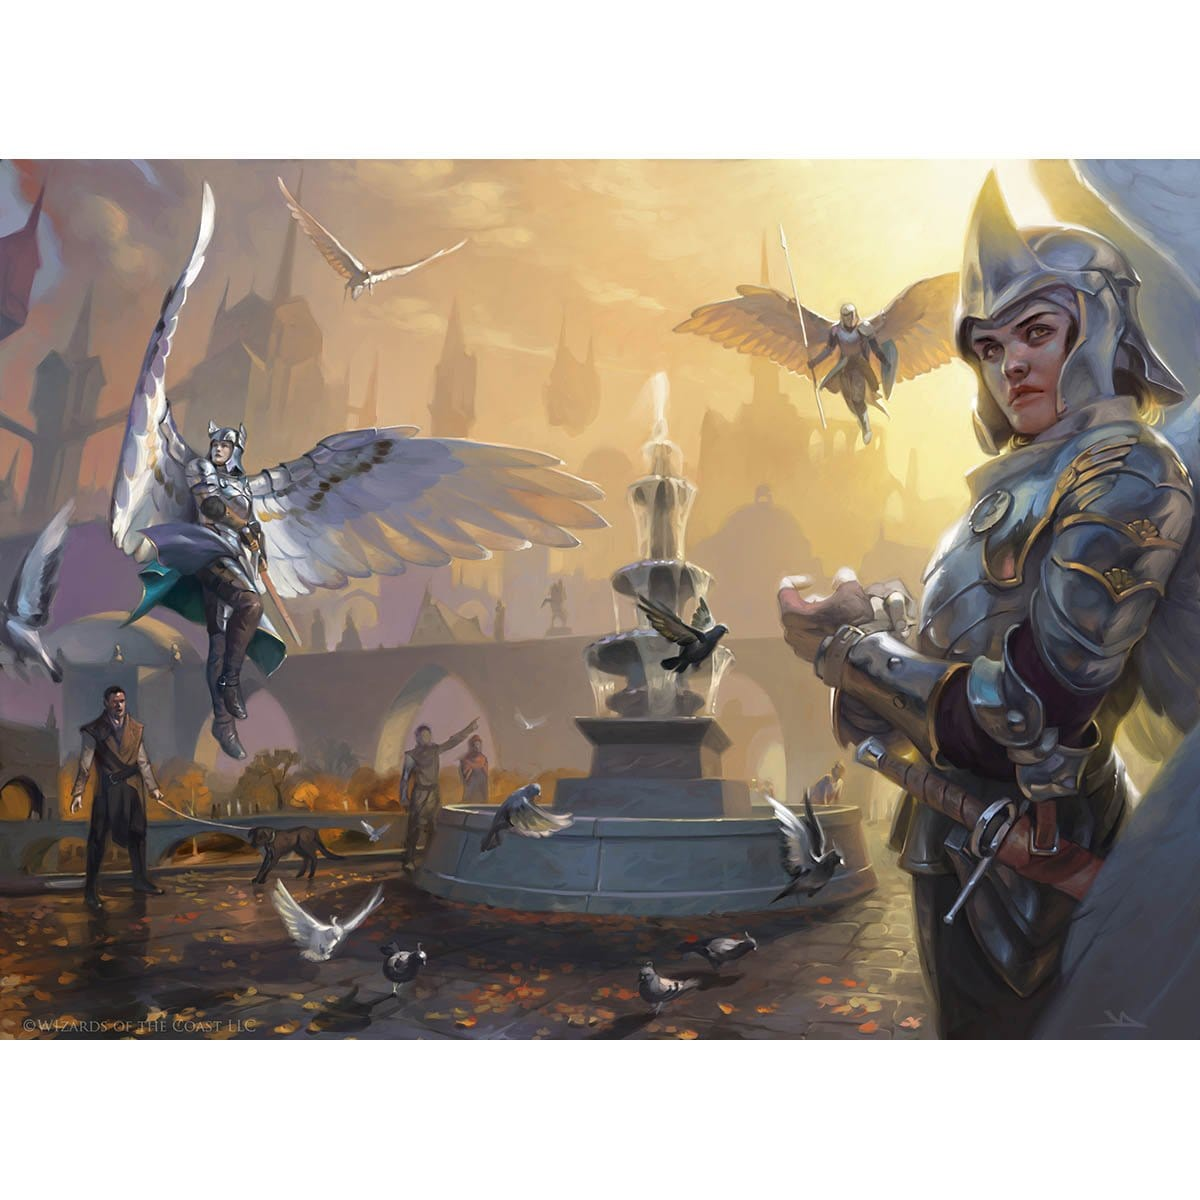 Divine Visitation Print - Print - Original Magic Art - Accessories for Magic the Gathering and other card games